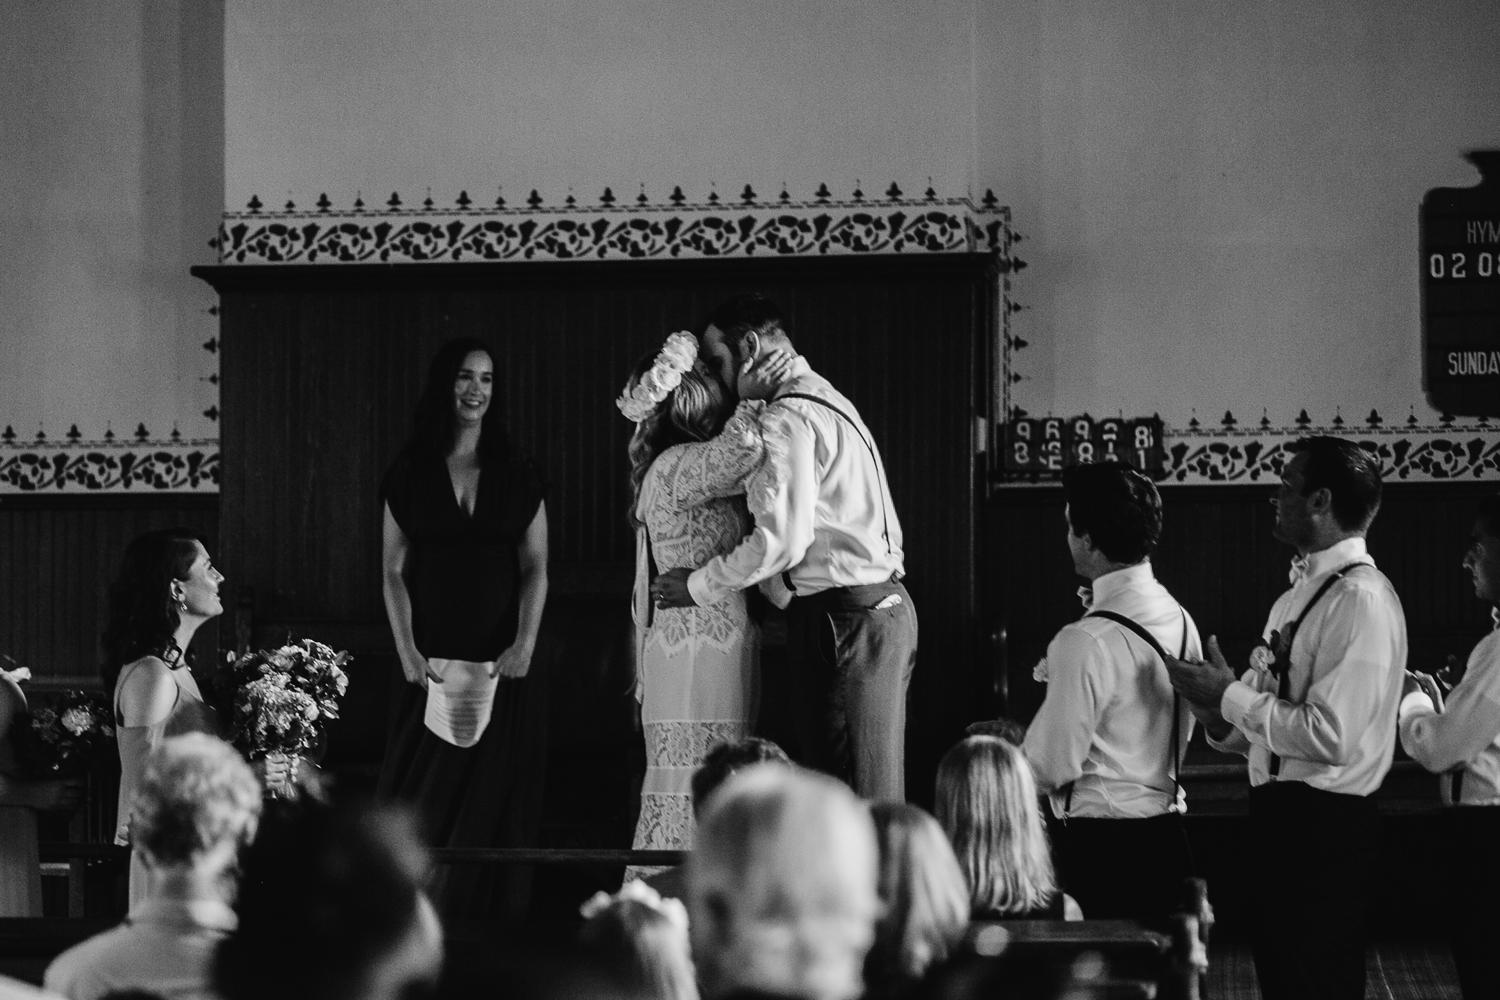 cumberland heritage museum wedding - kerry ford photography-093.jpg